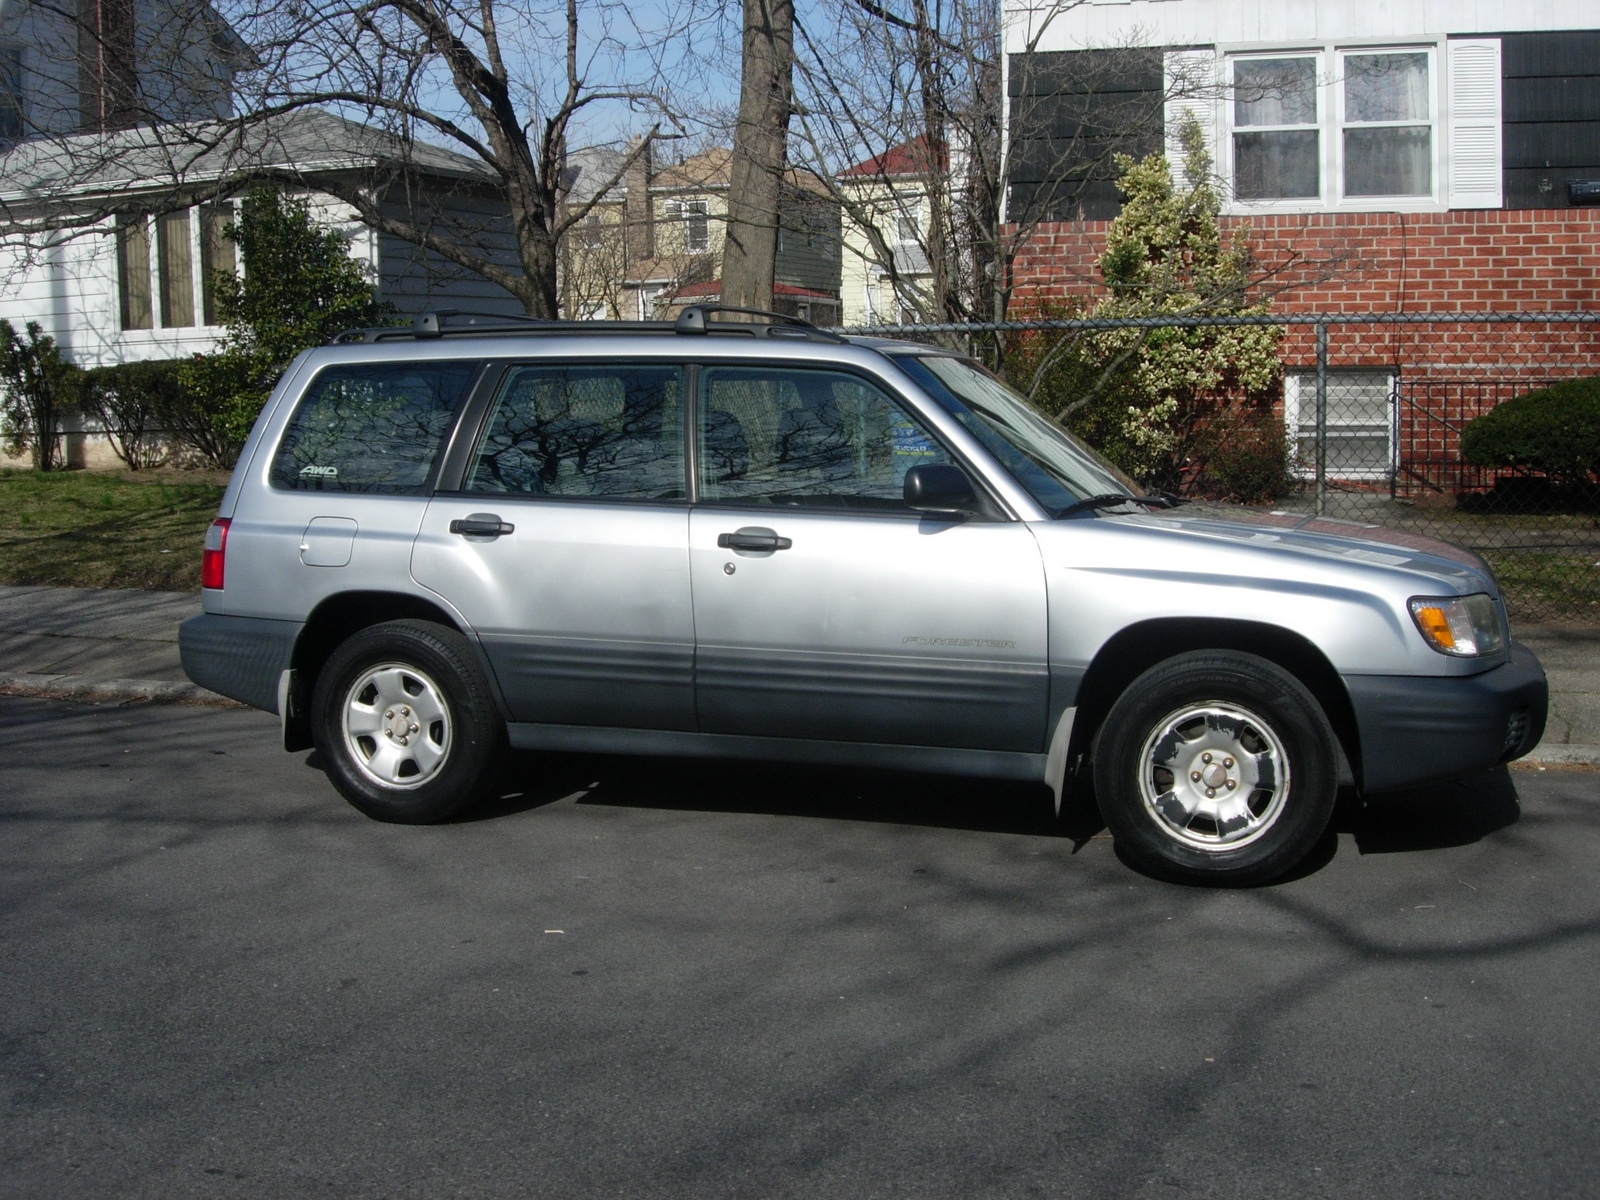 subaru forester gray 2002 mitula cars pictures to pin on pinterest